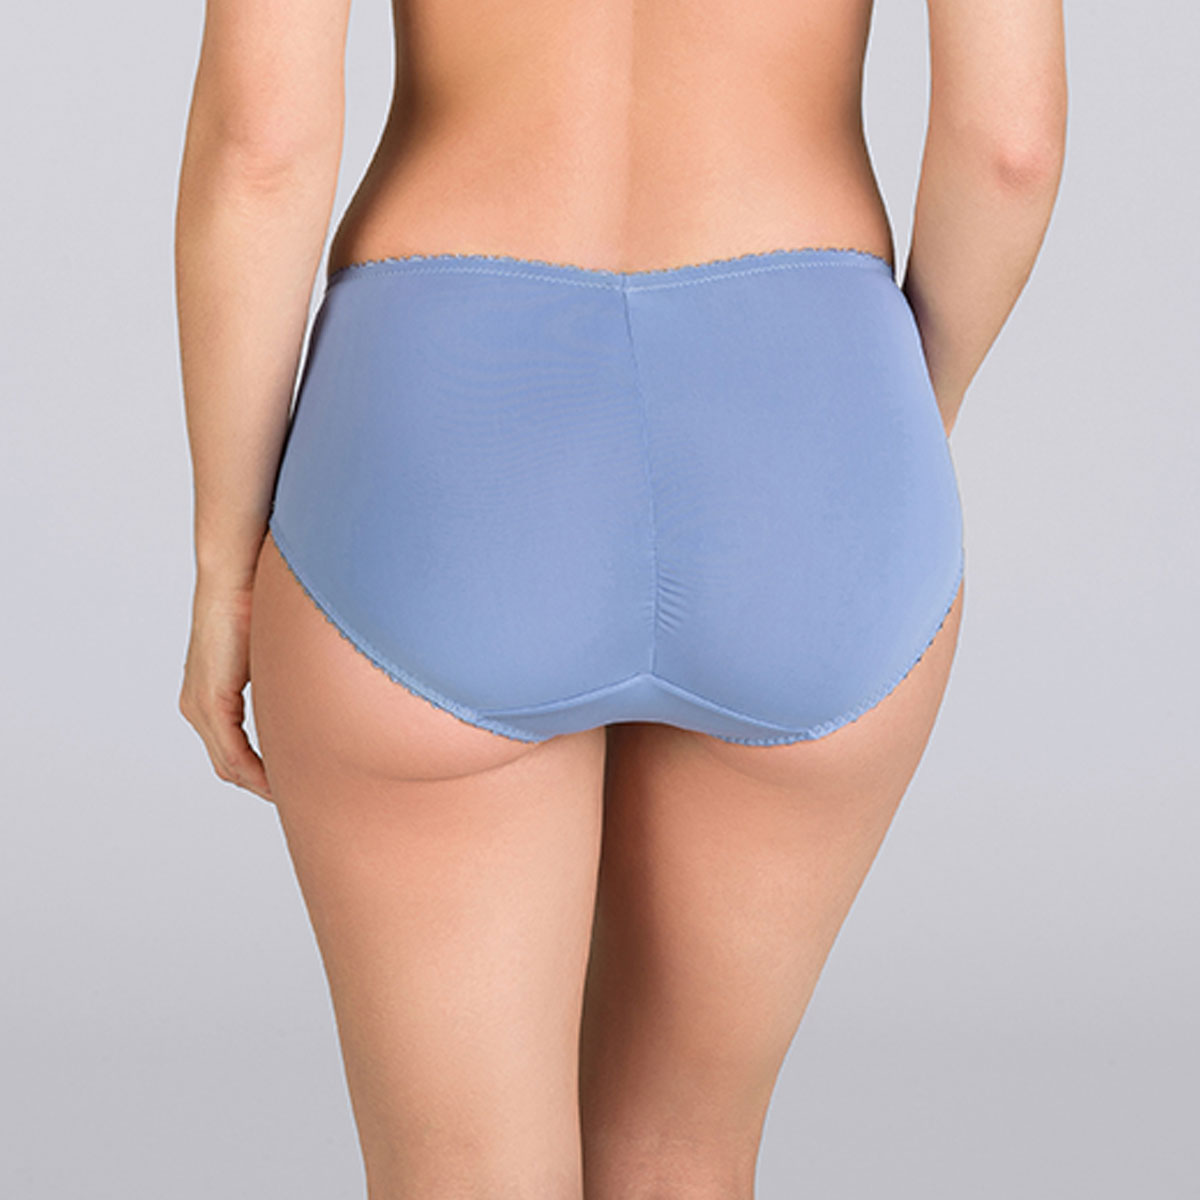 Denim blue Midi brief - Cross your Heart Lace-PLAYTEX